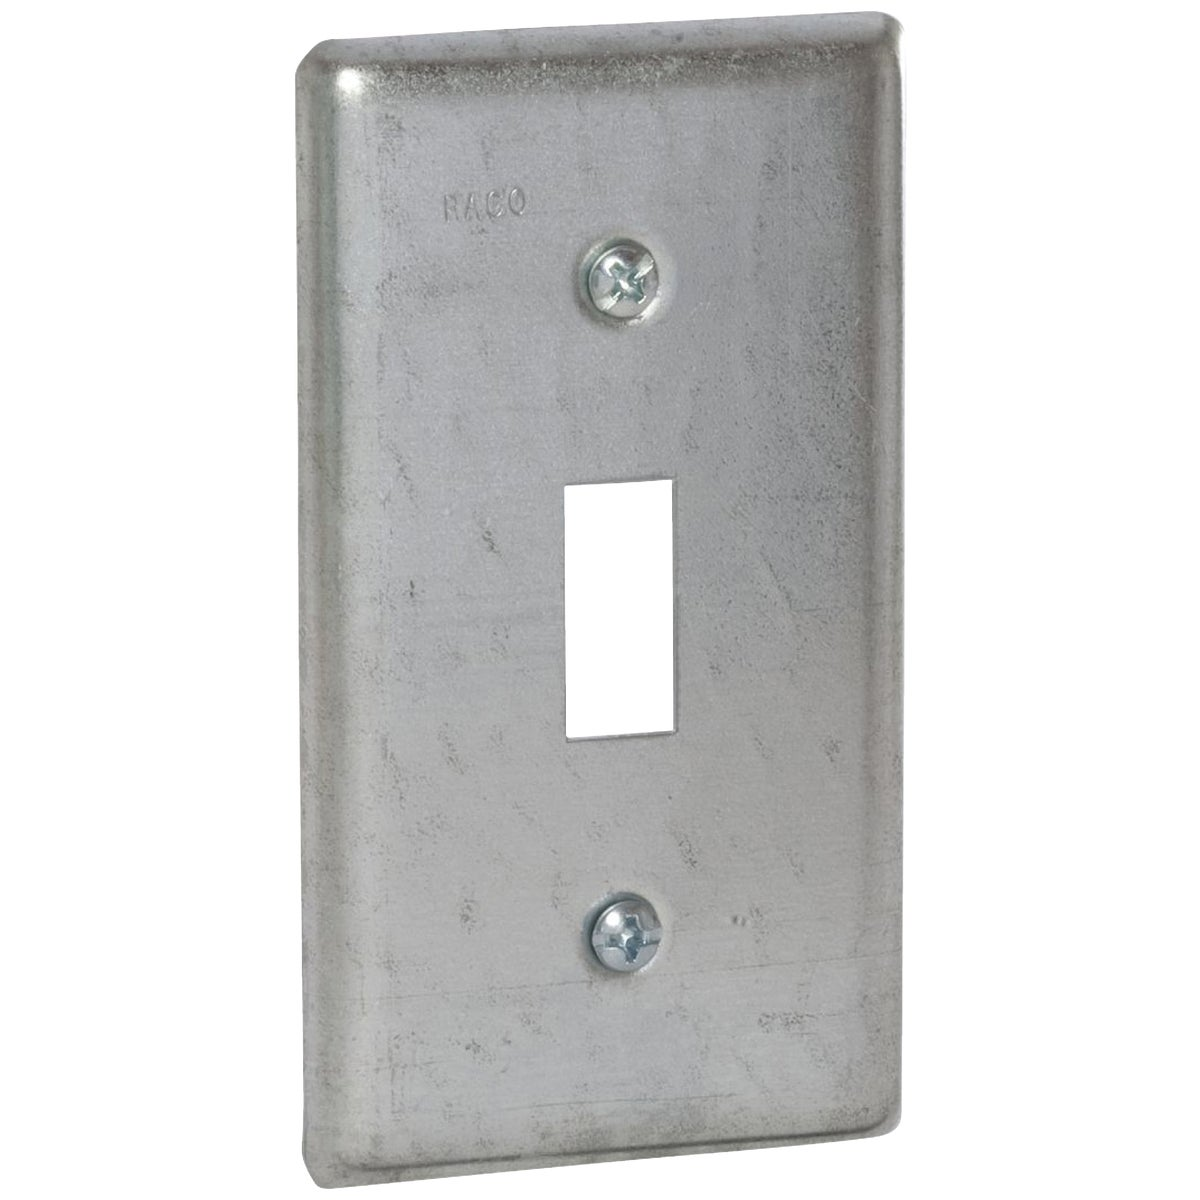 HANDY 1-SWITCH COVER - 58C30 by Thomas & Betts